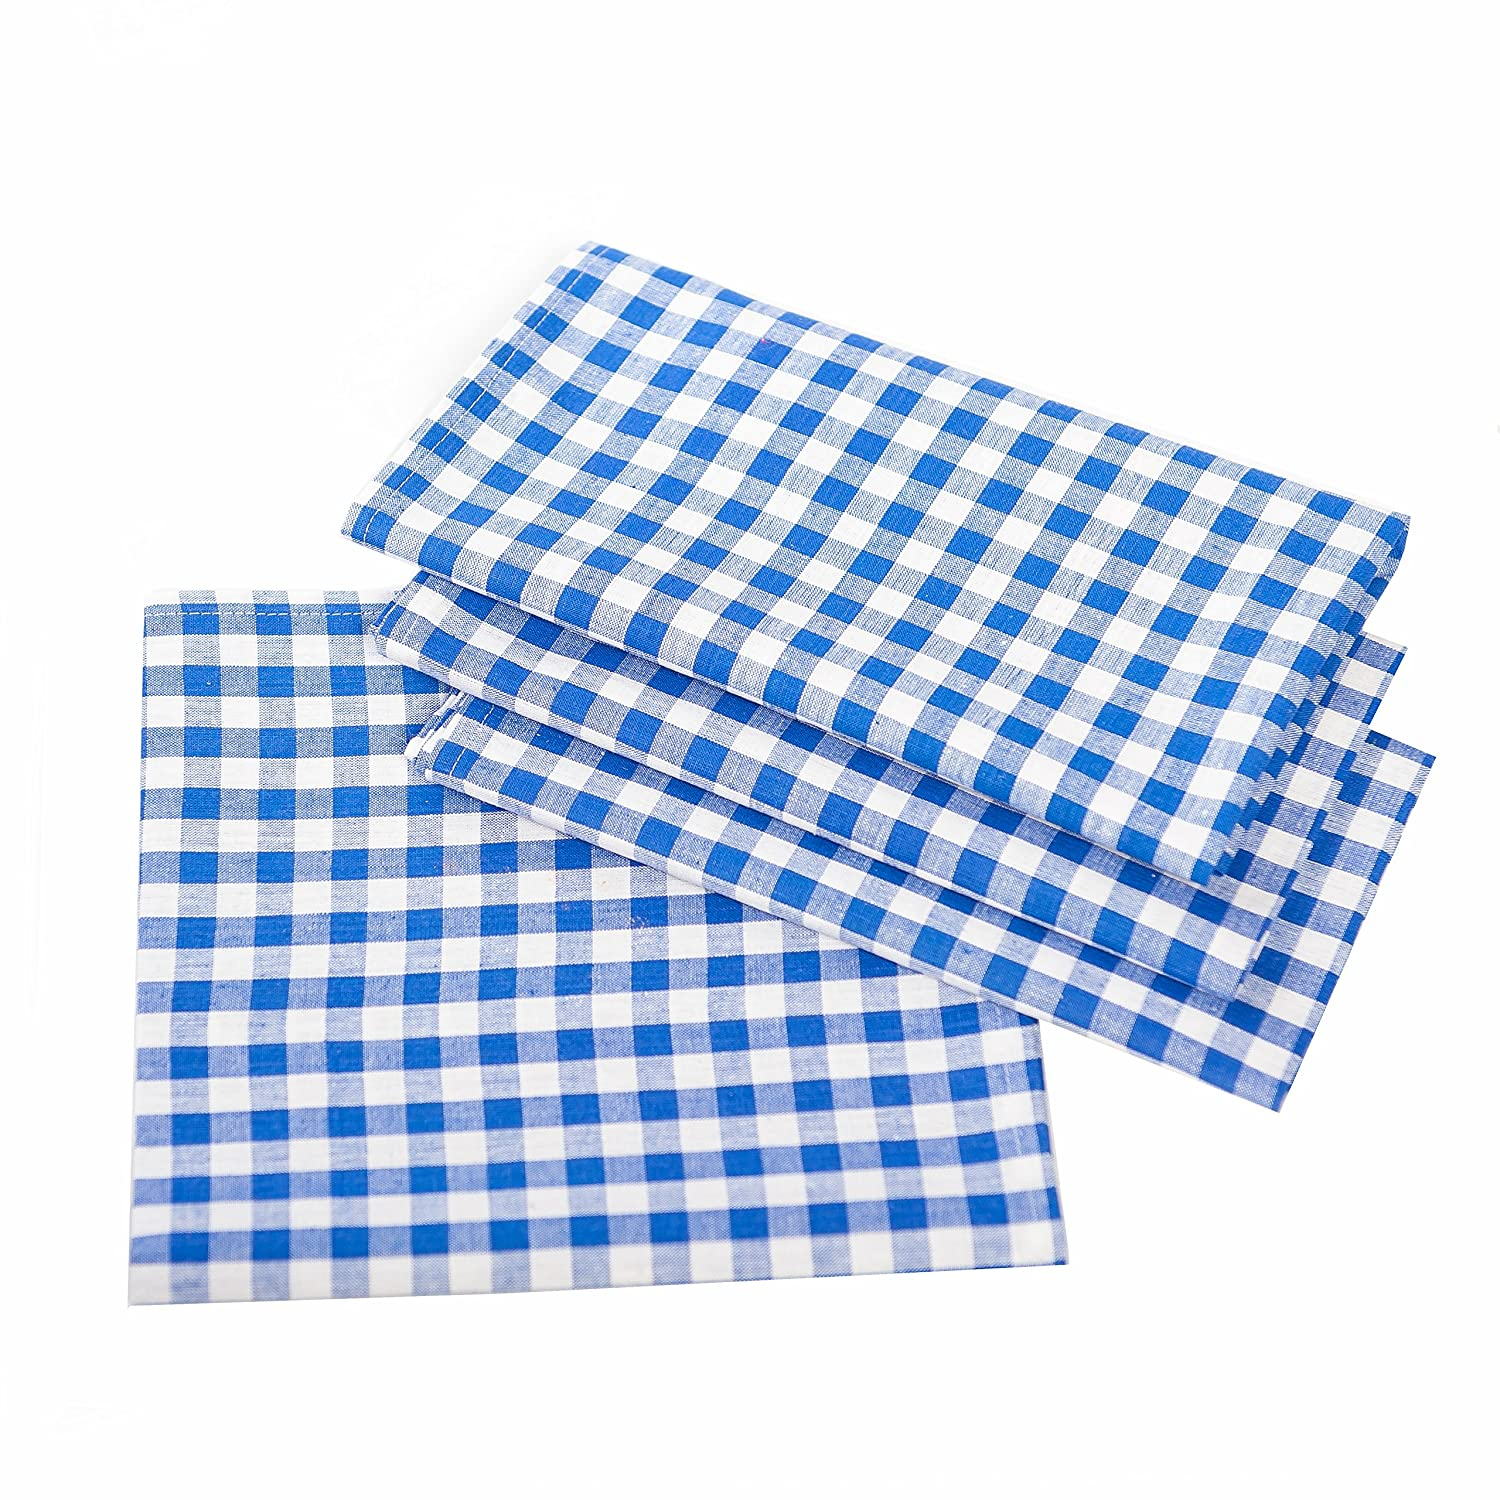 Country House Checkered Table Covers–Choose your Size & Colour–100% Cotton, Cotton, Chequered Red / White, 30x30 cm eckig TextilDepot24